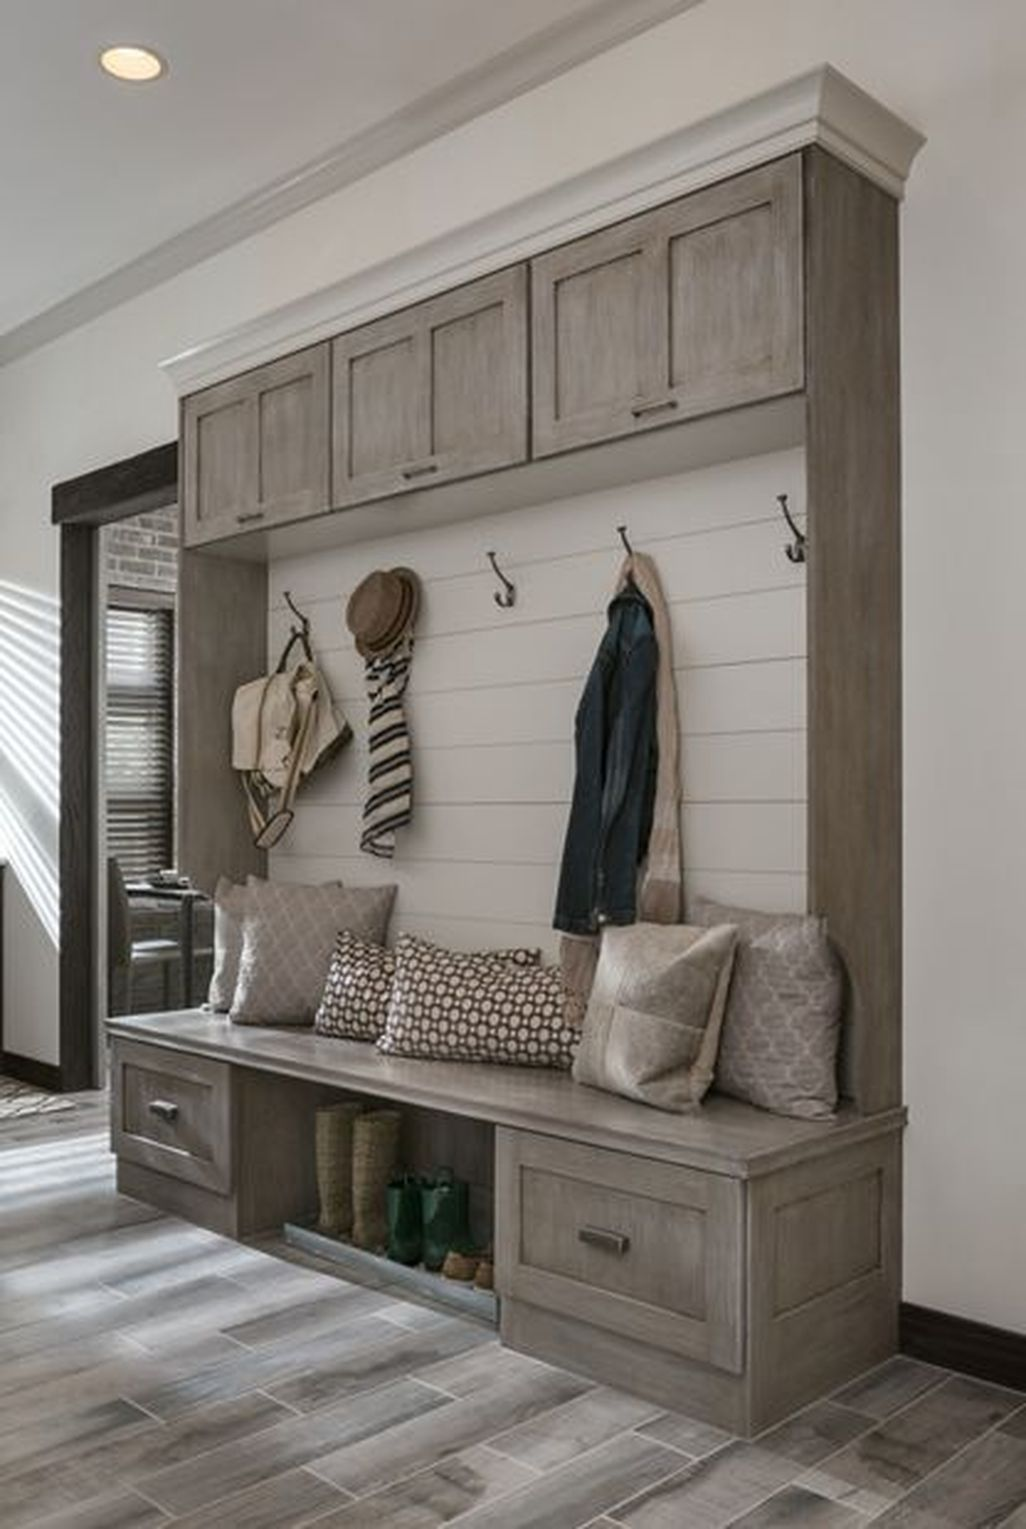 47 Adorable Rustic Mudroom Bench Decorating Ideas On A